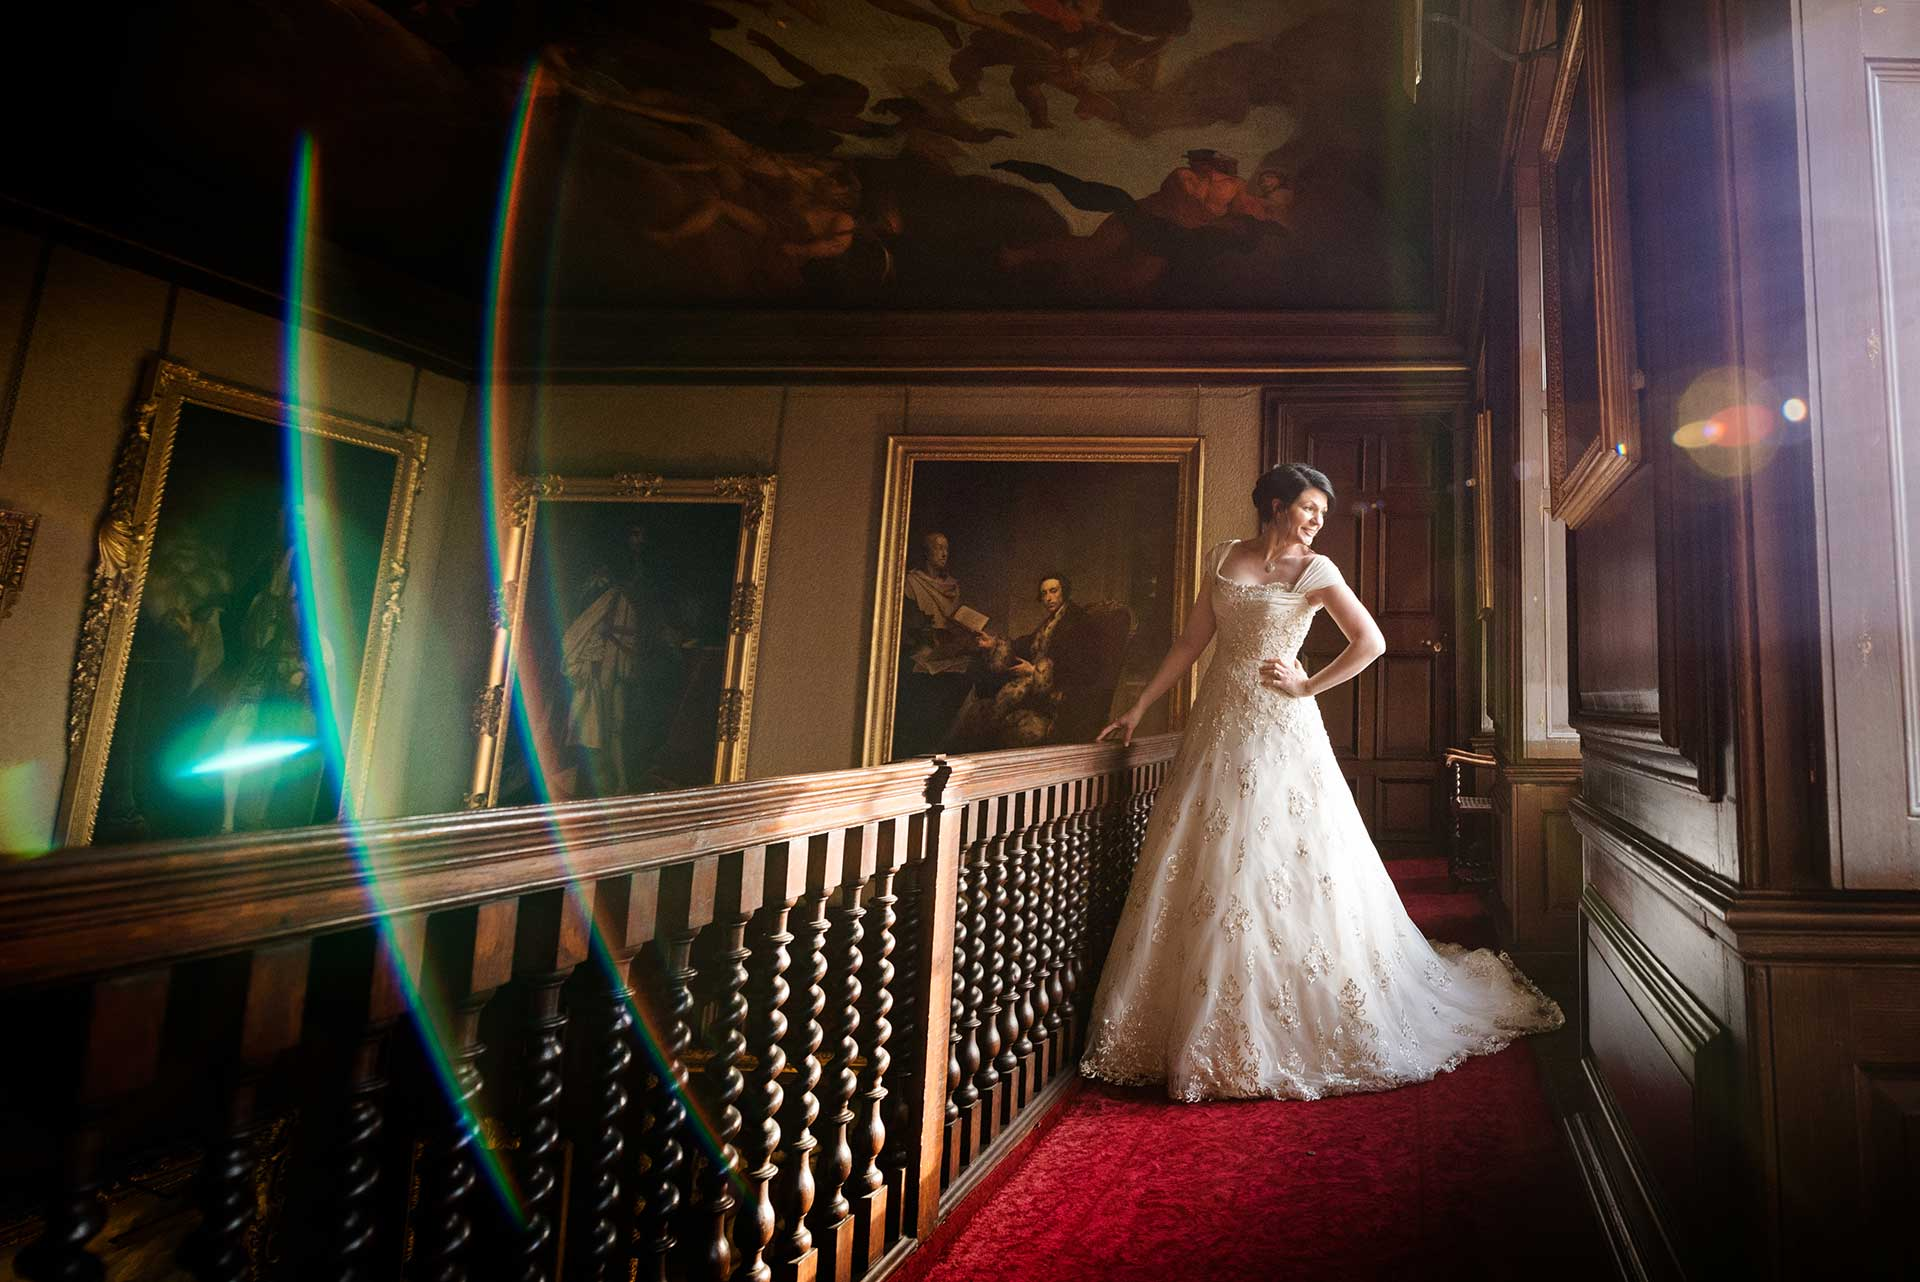 Bridal fashion shoot in Northamptonshire